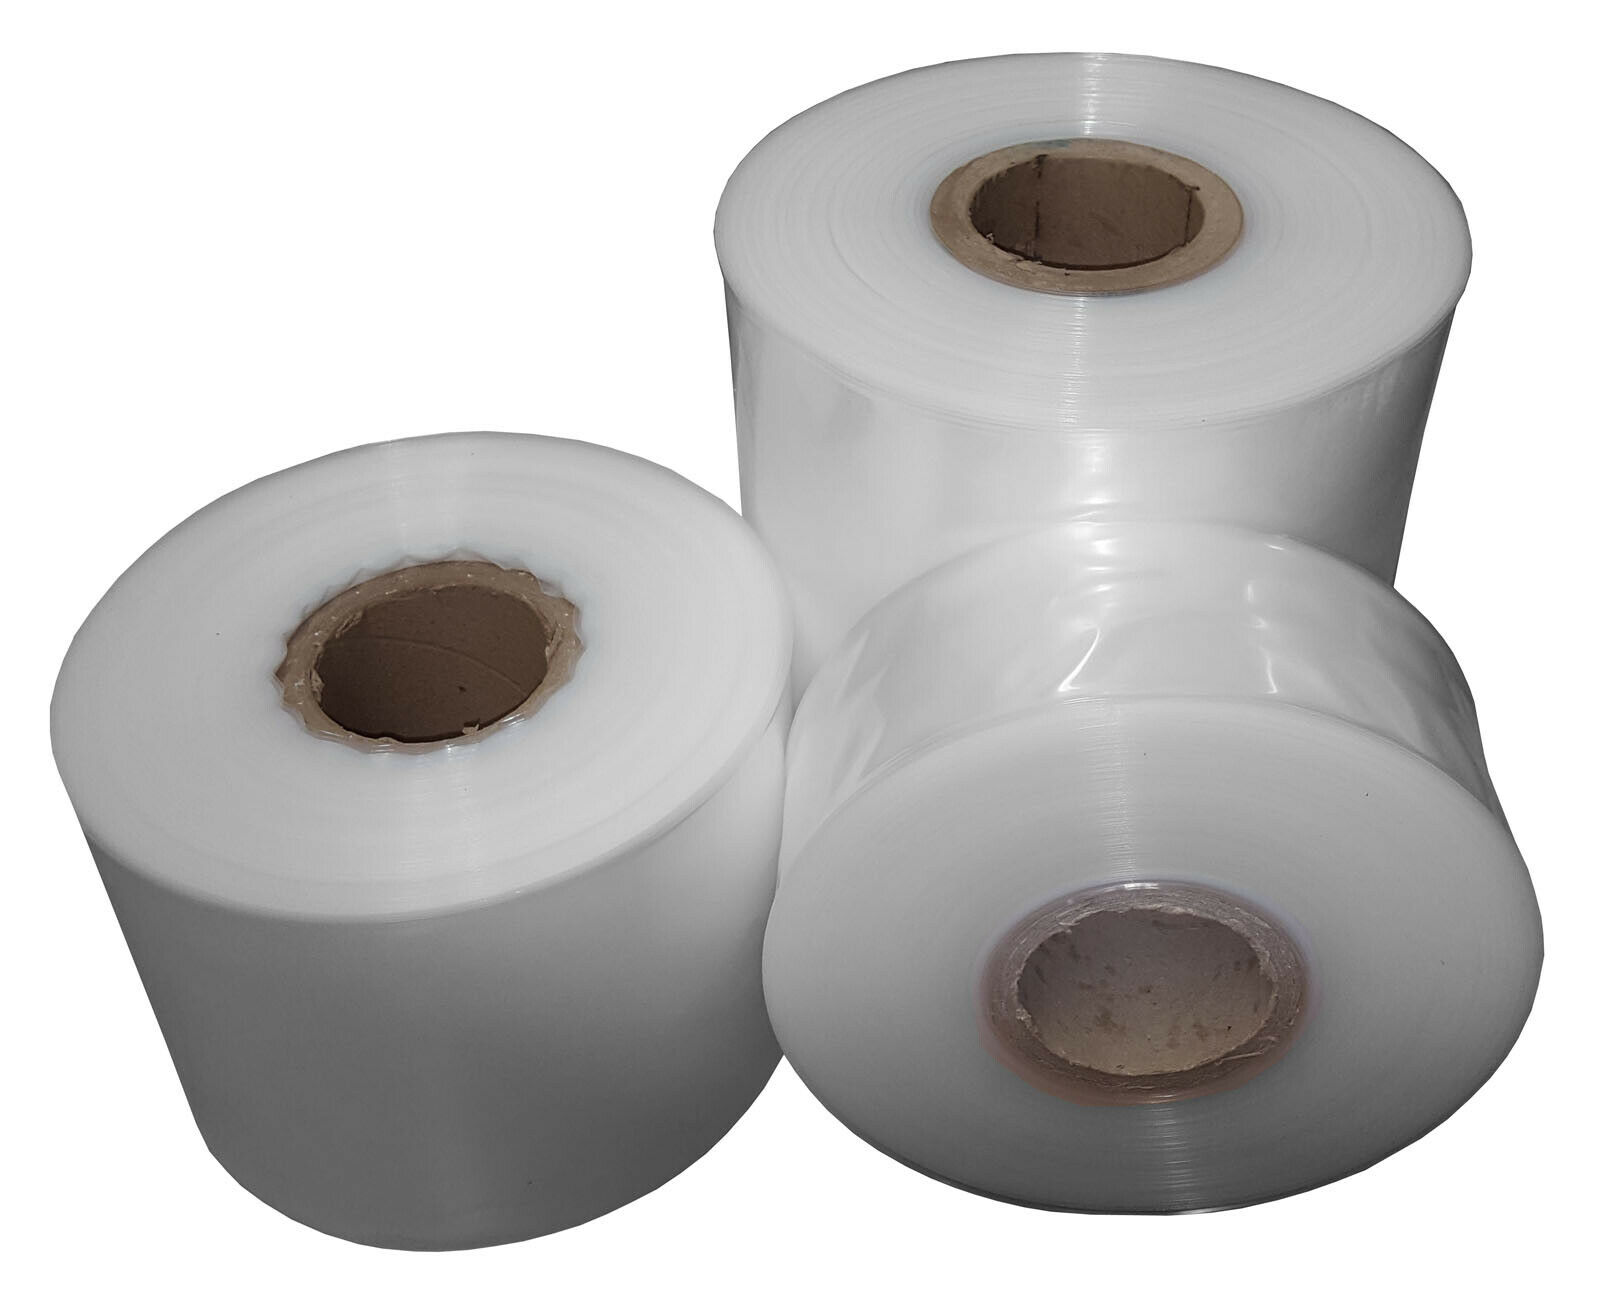 250 Gauge Polythene Layflat Poly Tubing Heat Seal Bags Range of Sizes Available 142052393782 - 250 Gauge Polythene Layflat Poly Tubing Heat Seal Bags Range of Sizes Available